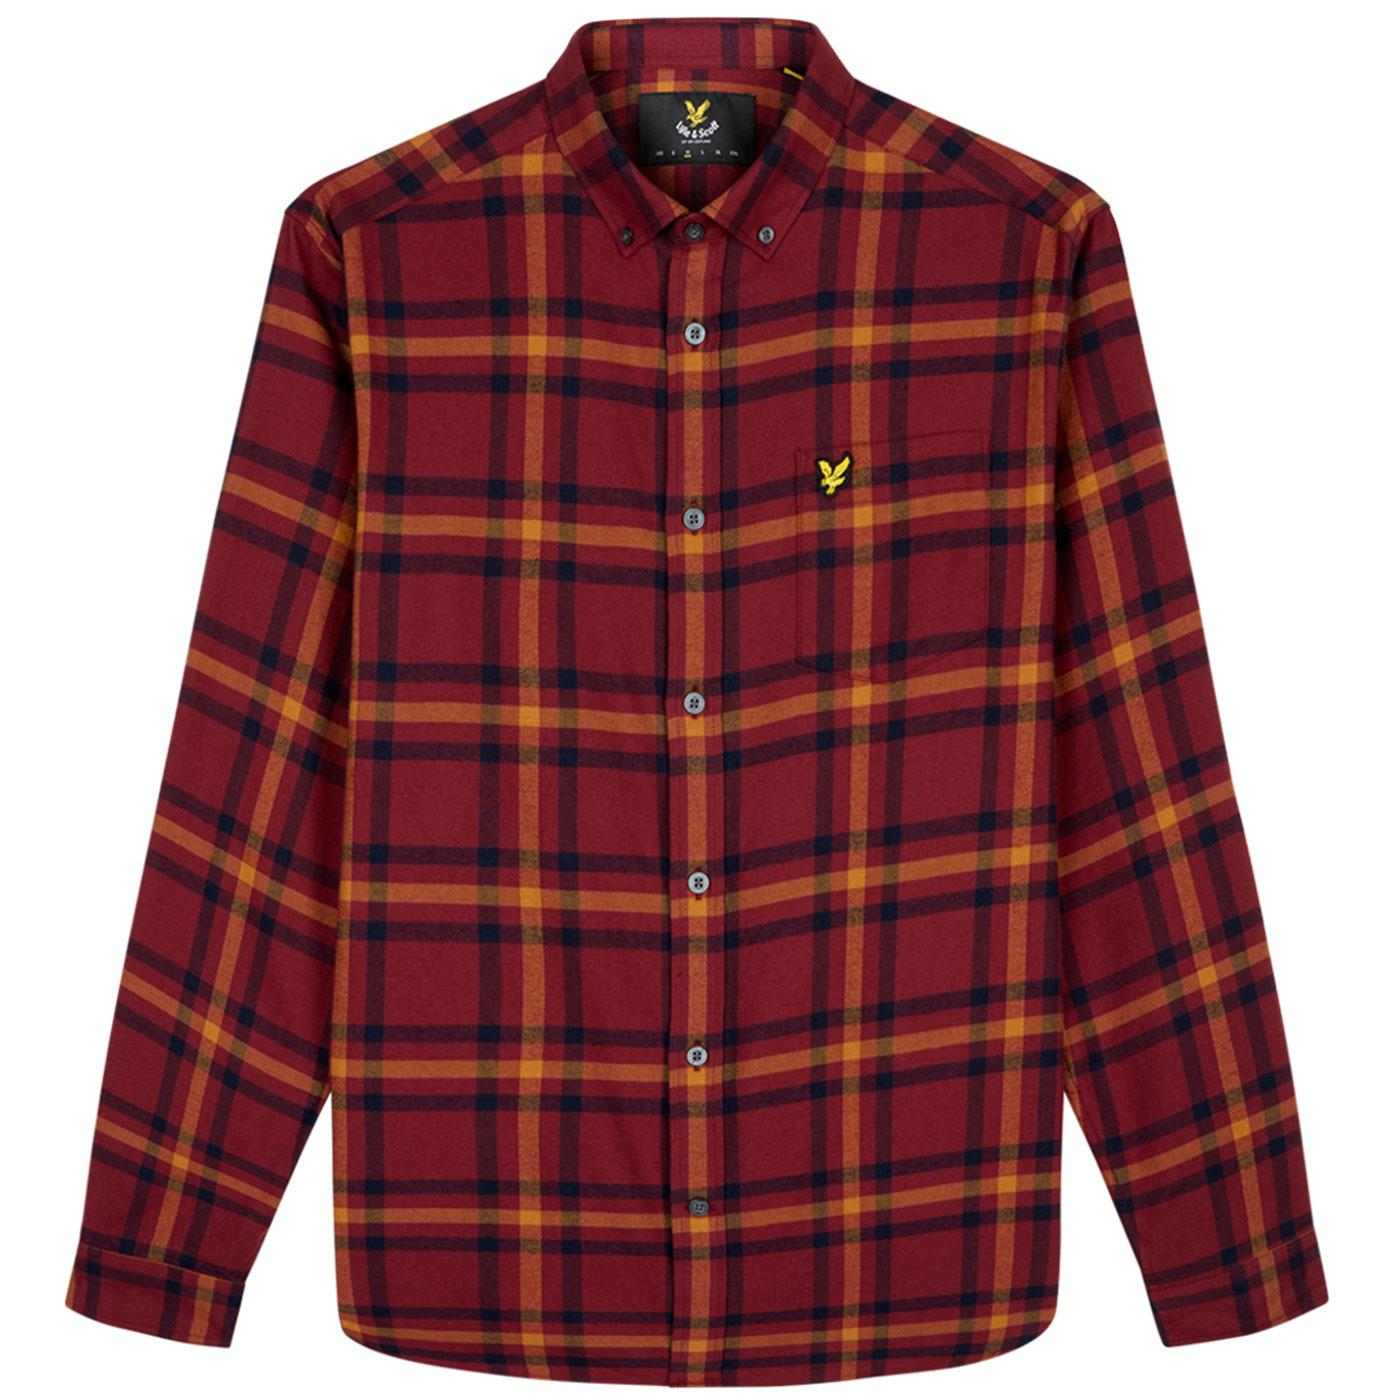 LYLE & SCOTT Retro Mod Flannel Check Shirt CLARET